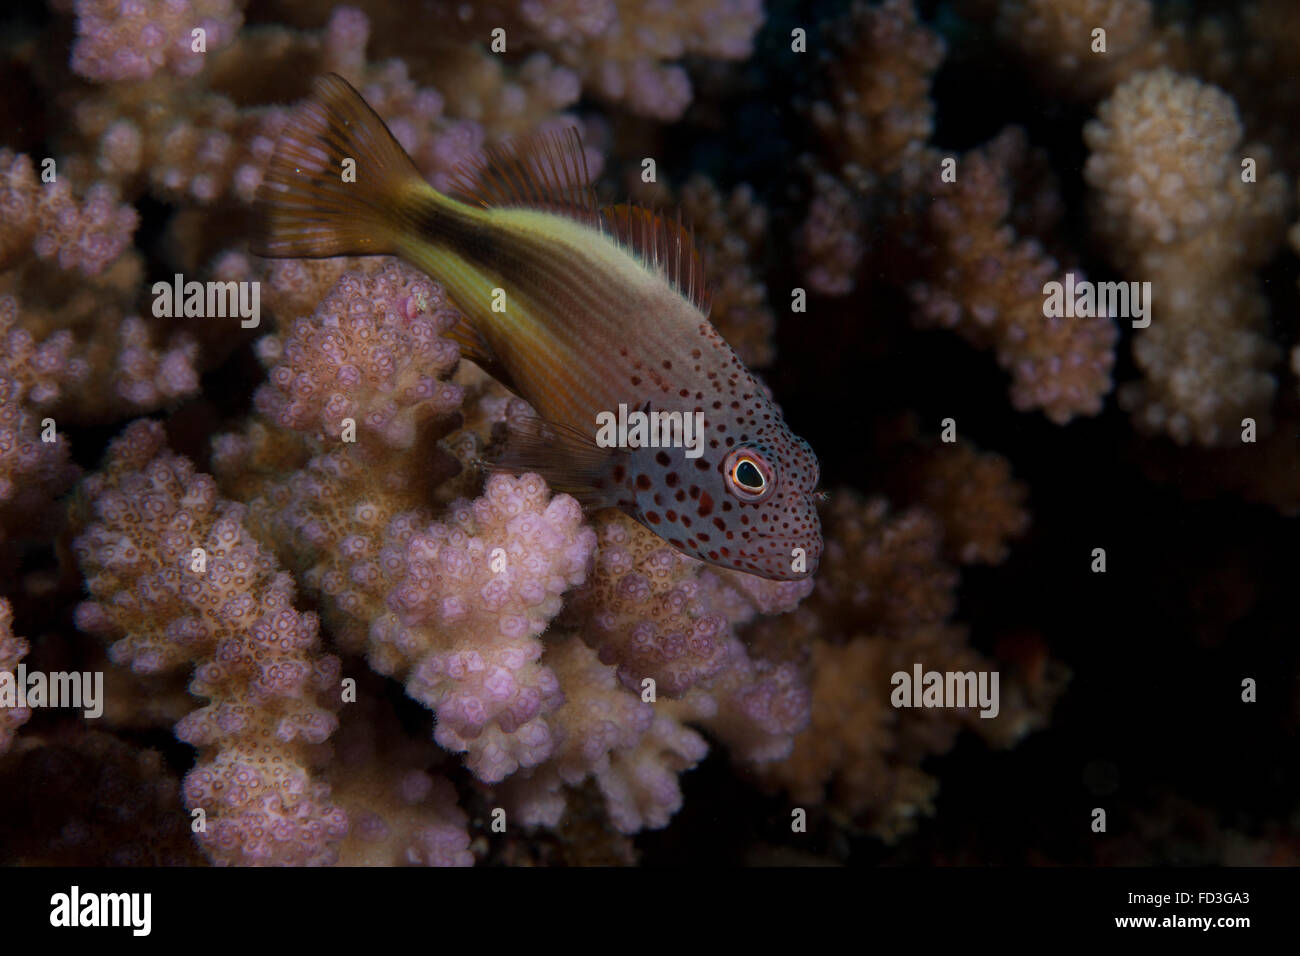 Freakled hawkfish (Paracirrhites forsteri) sits on some Acropora coral on a Fijian reef. - Stock Image